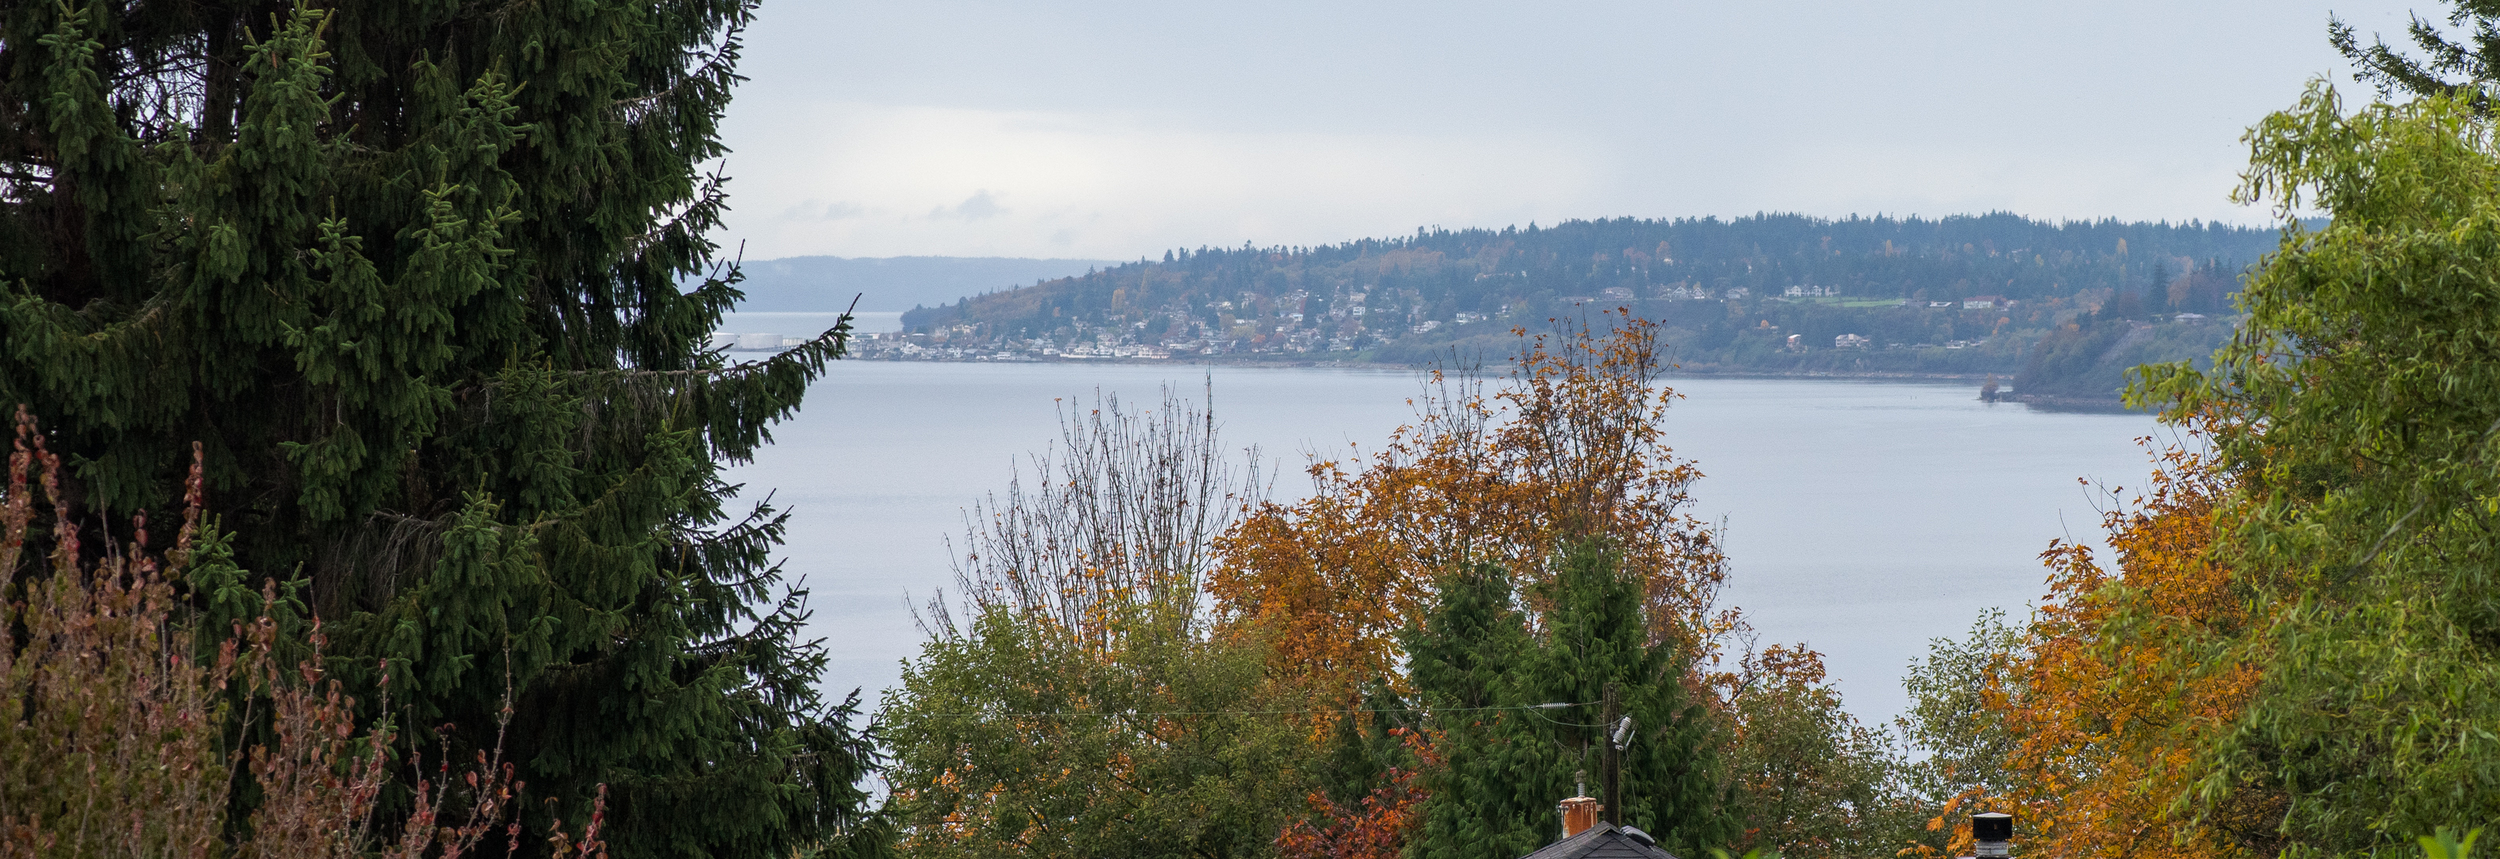 View of Puget Sound from the front deck